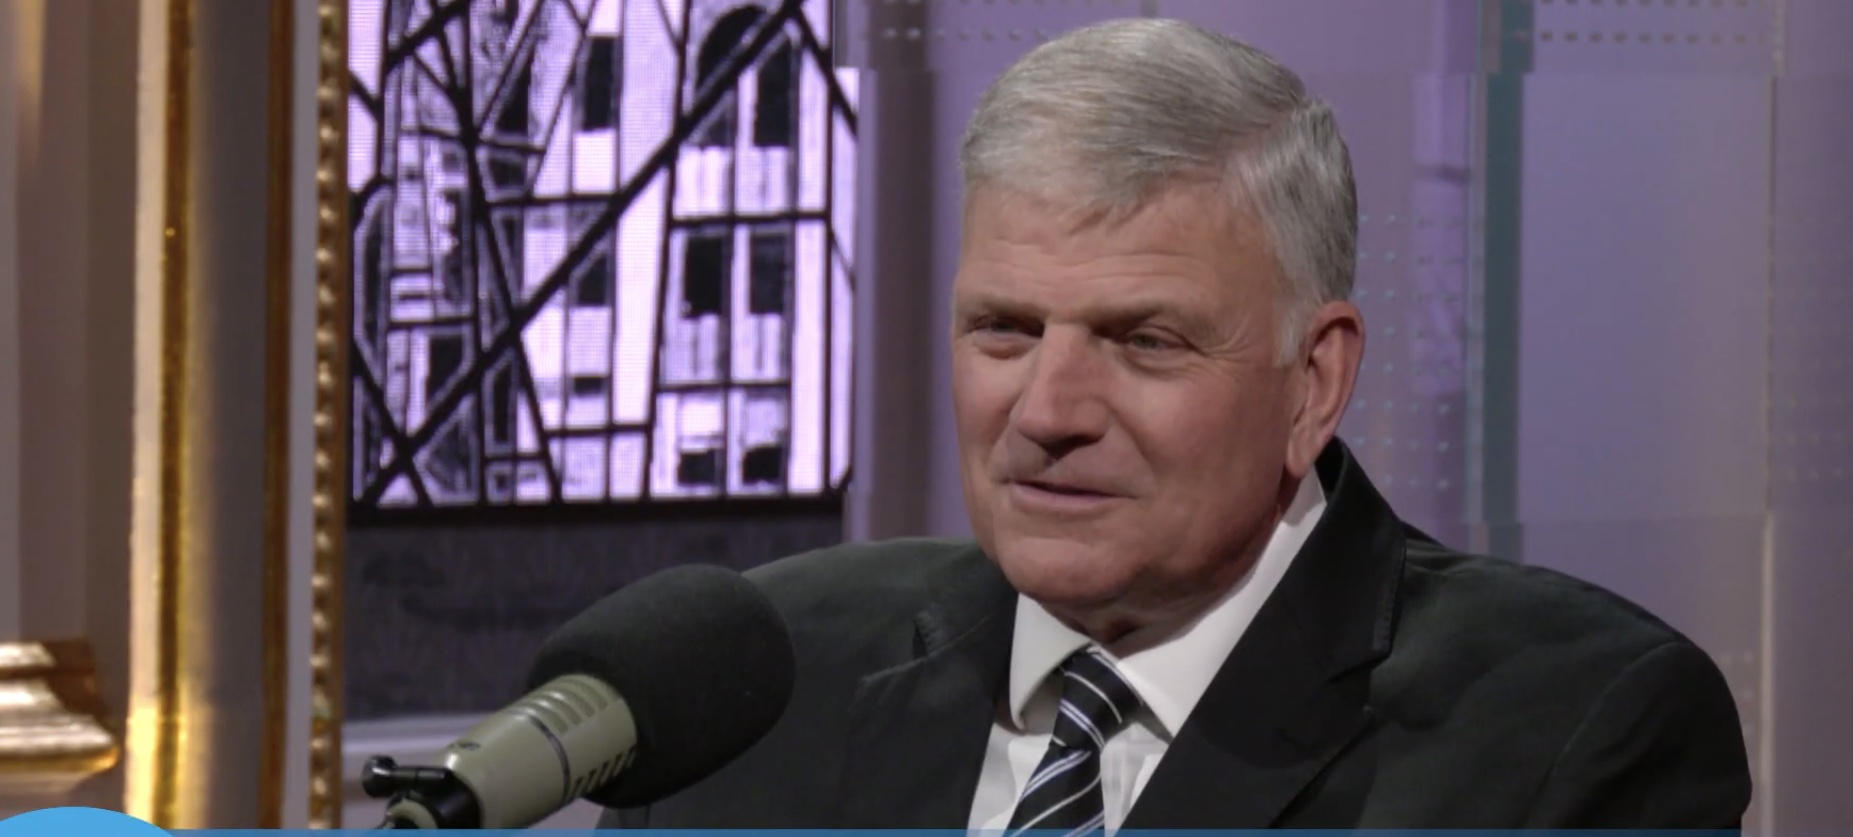 Franklin Graham Says Opposition To Trump Is 'Demonic'